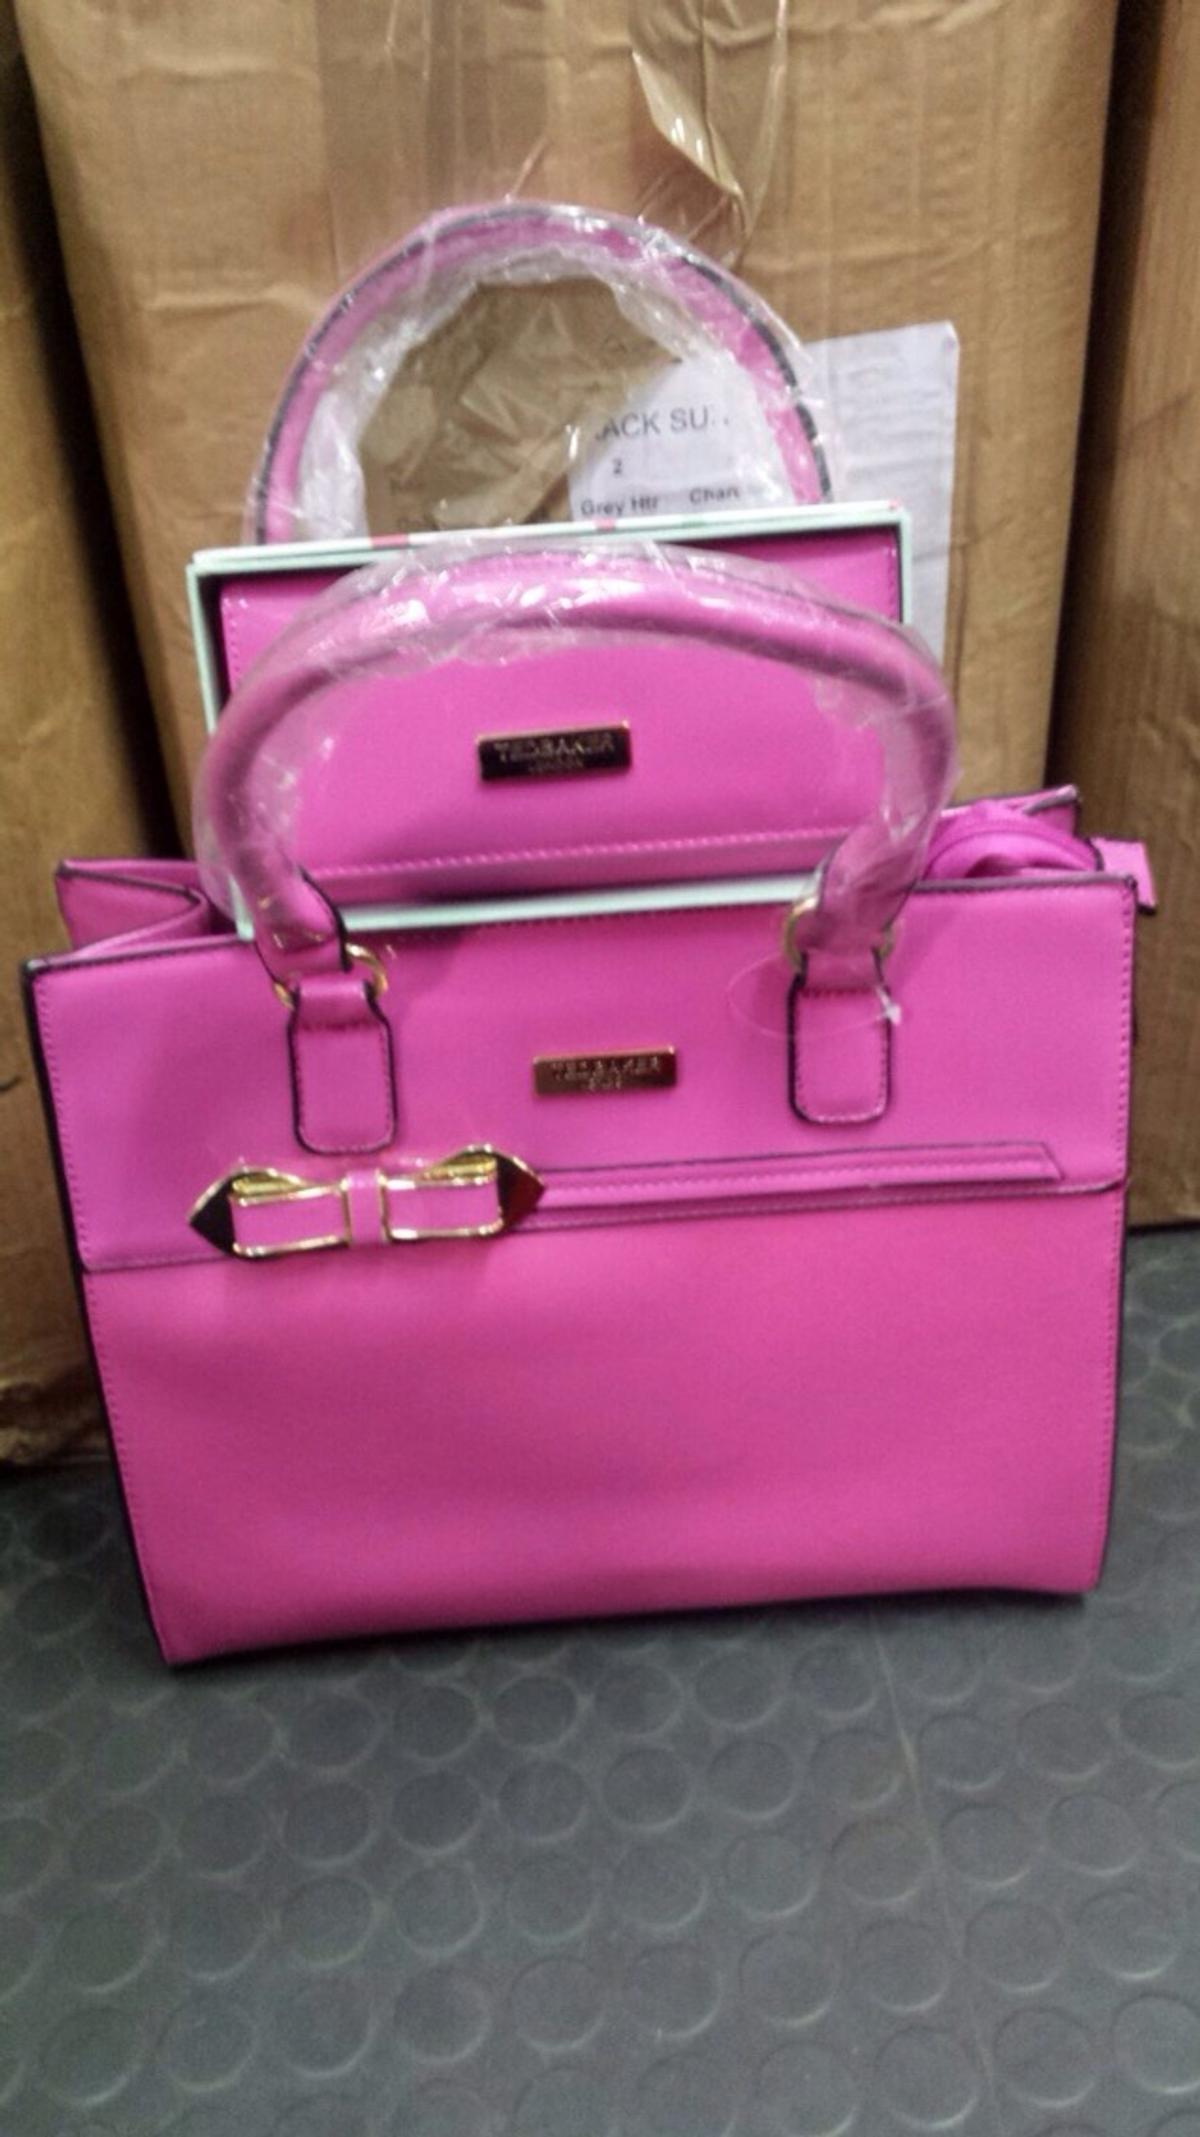 2b81455f4 Ted Baker Bag And Purse Sets In G33 City For 50 00 Shpock